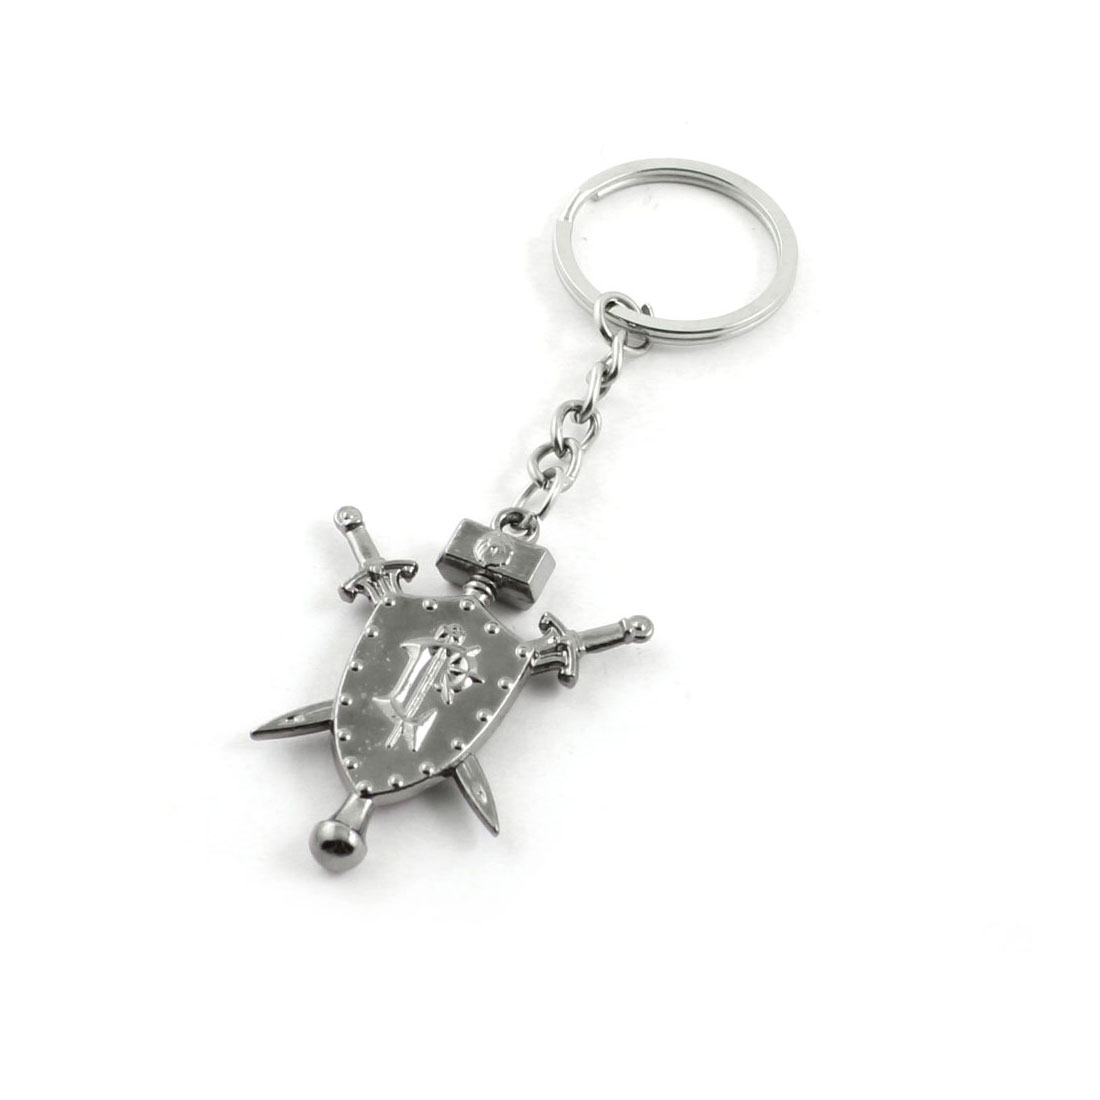 Metal Sword Design Pendant Split Key Ring Keychain Key Holder